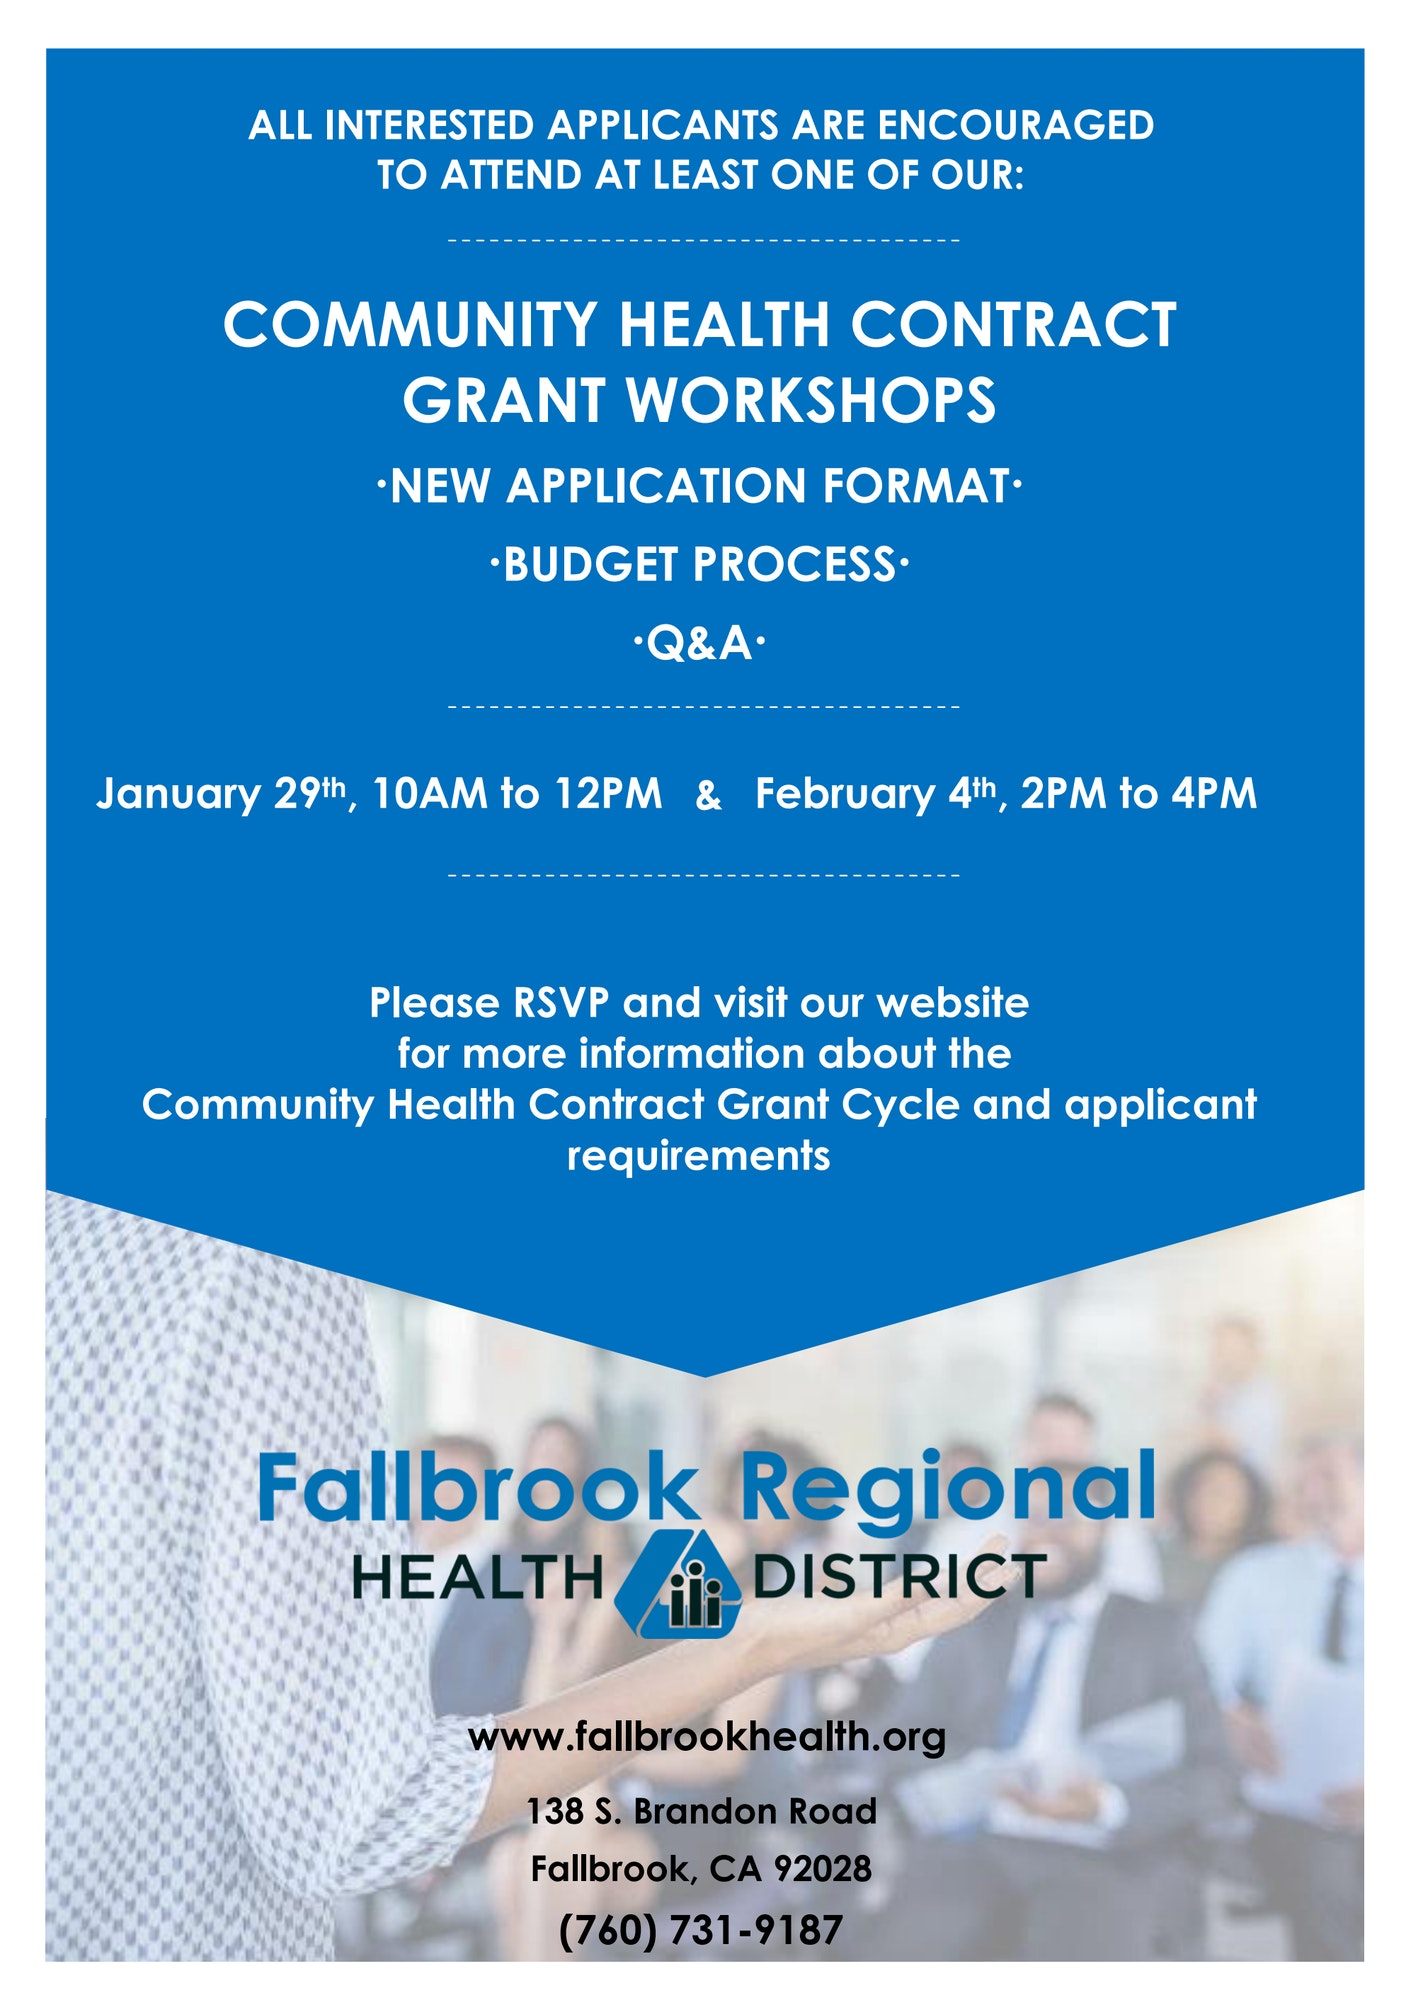 COMMUNITY HEALTH CONTRACT GRANT WORKSHOPS: JAN 29TH, 10AM-12PM, FEB 4TH, 2PM-4PM. 138 SOUTH BRANDON ROAD. PLEASE RSVP TO 760731-9187. VISIT OUR WEBSITE AT WWW.FALLBROOKHEALTH.ORG FOR MORE INFORMATION.